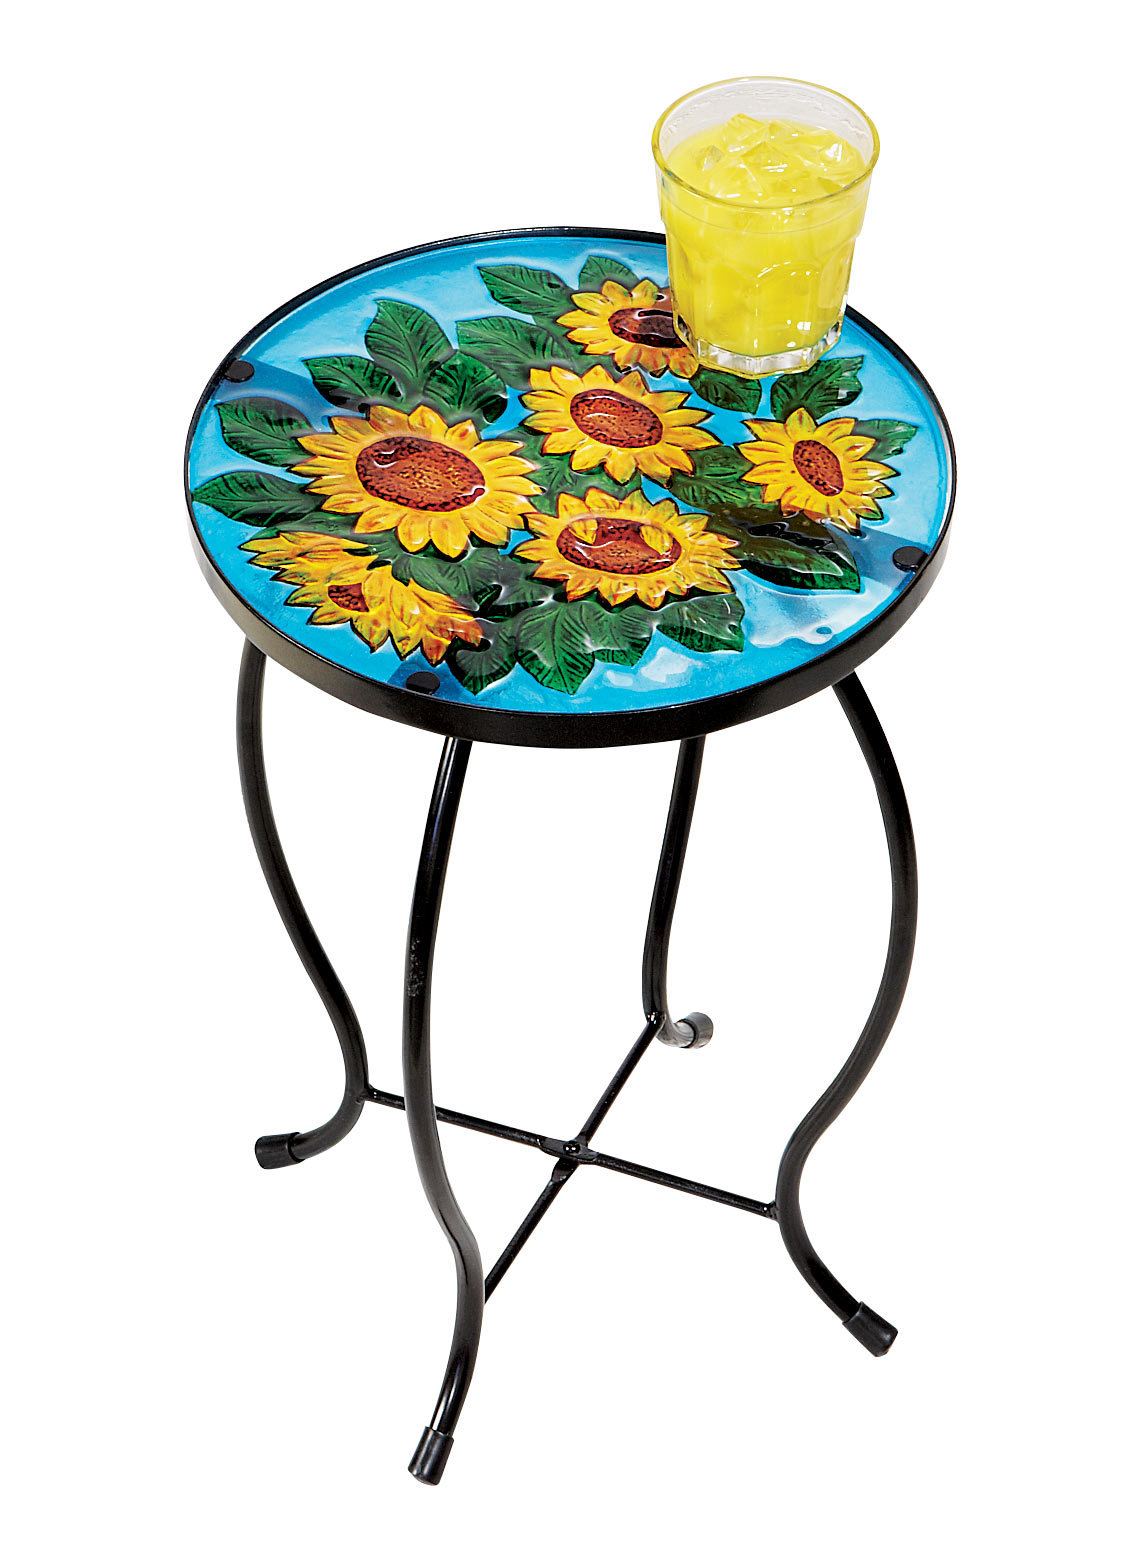 Sunflower side end table stand plant flower pot holder glass metal patio iron ebay - Flower pot stands metal ...